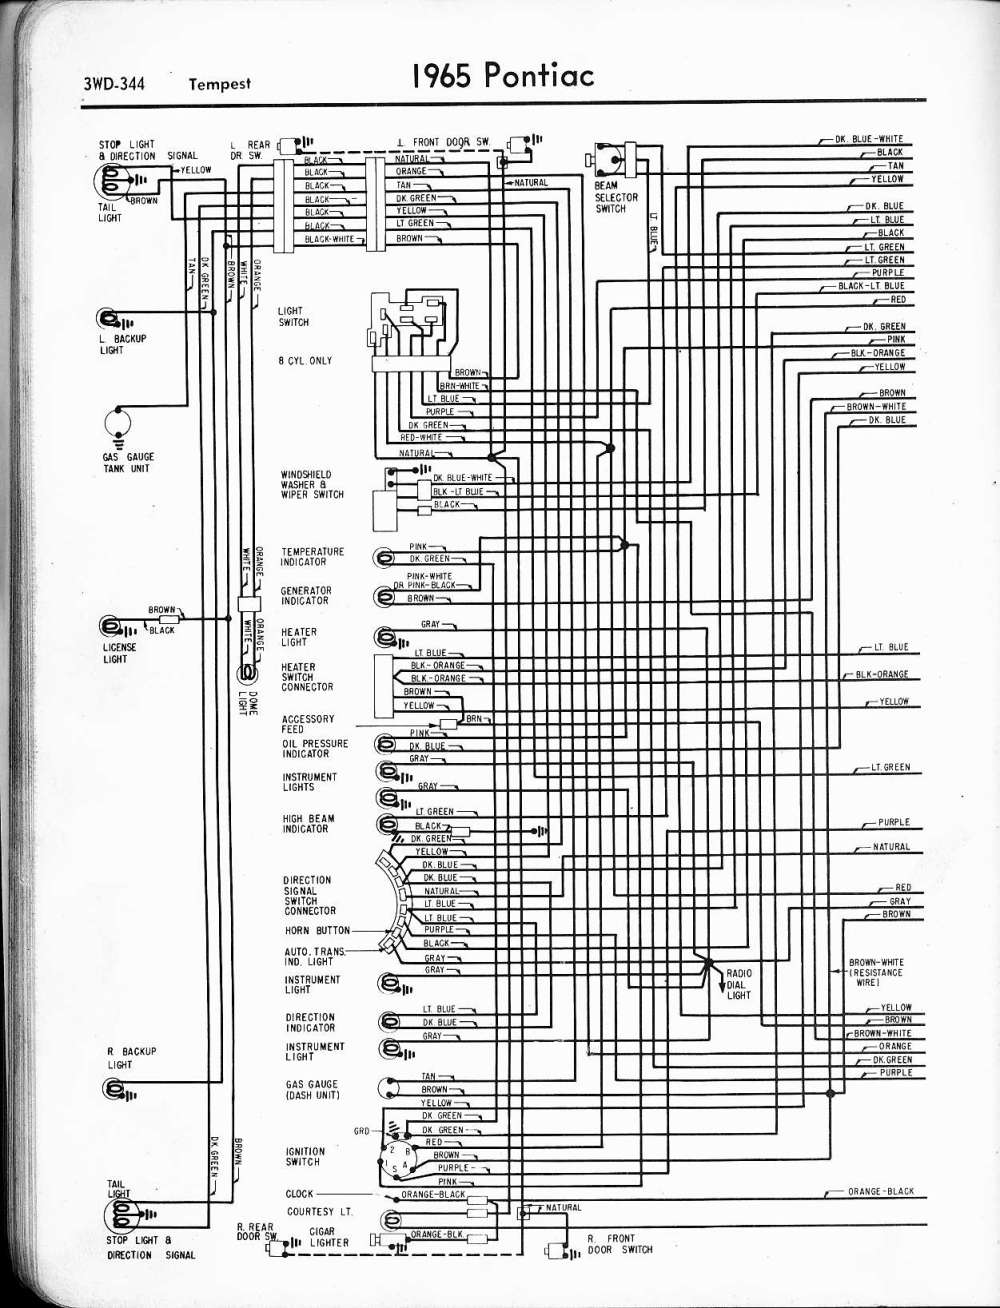 medium resolution of 1965 ford thunderbird wiring diagram free download data wiring diagram rh 3 hvacgroup eu 1964 thunderbird wiring diagram 1966 thunderbird wiring diagram